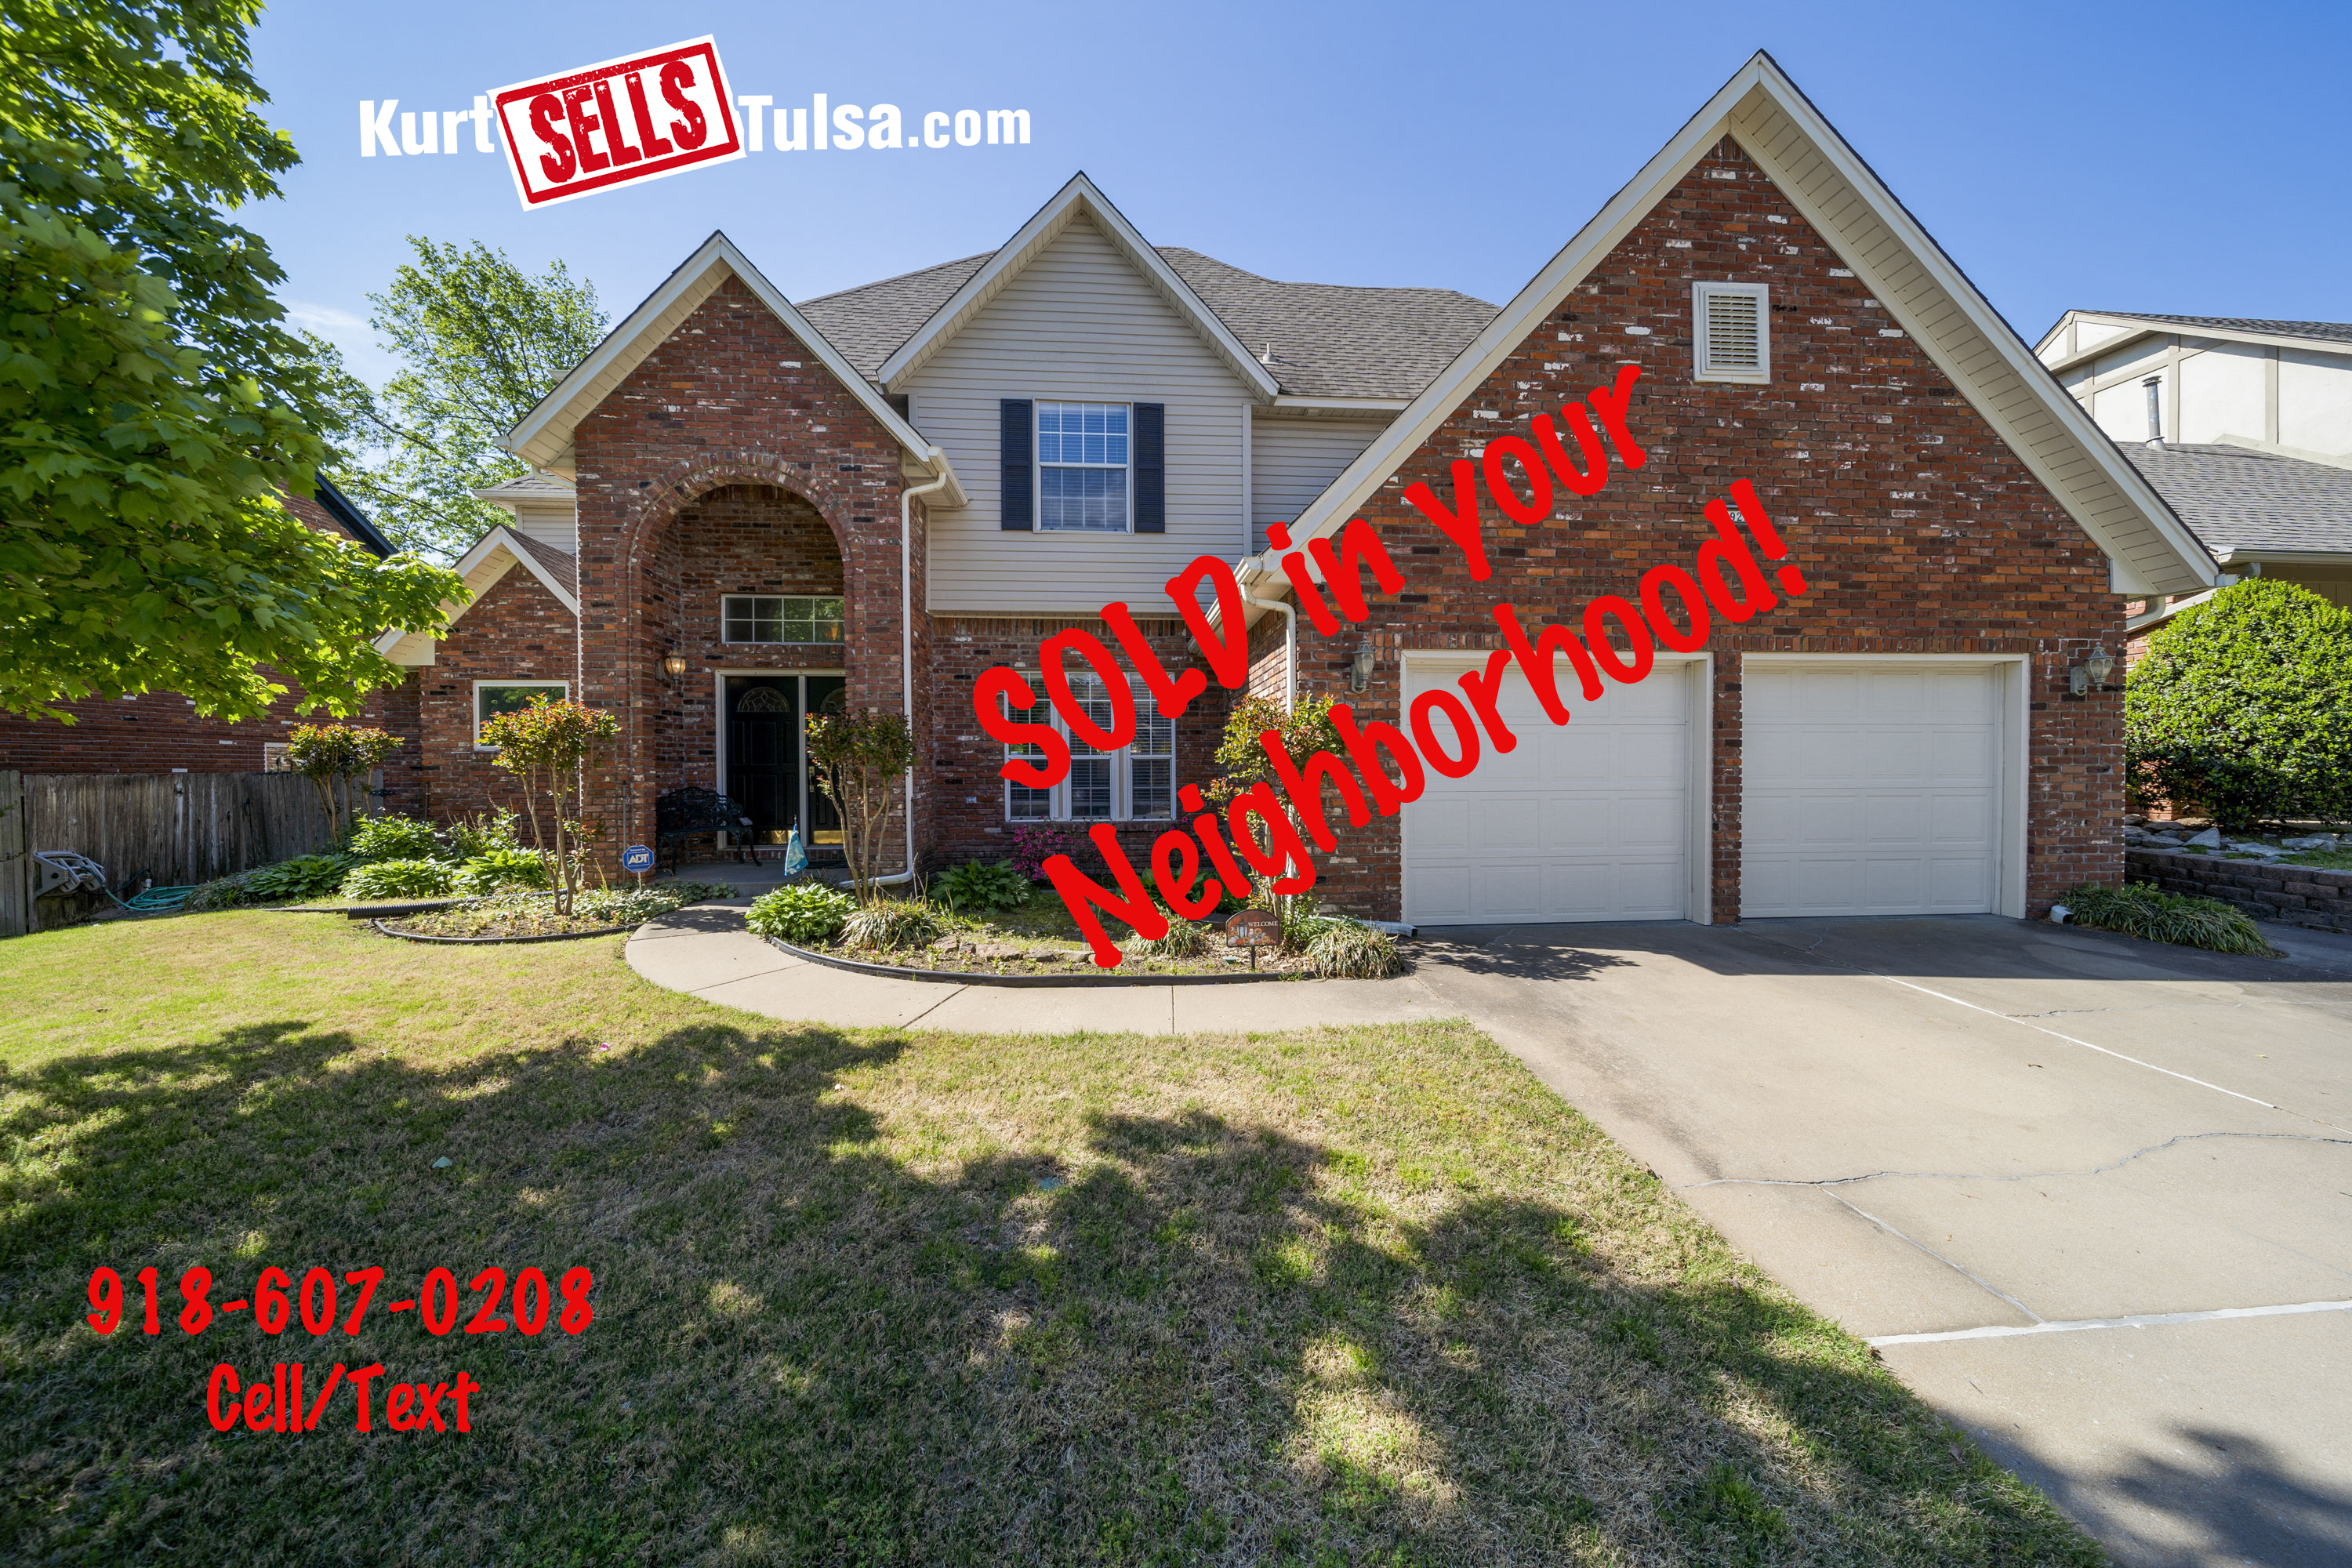 9922 E 97th street SOLD!!   Numbers Matter!